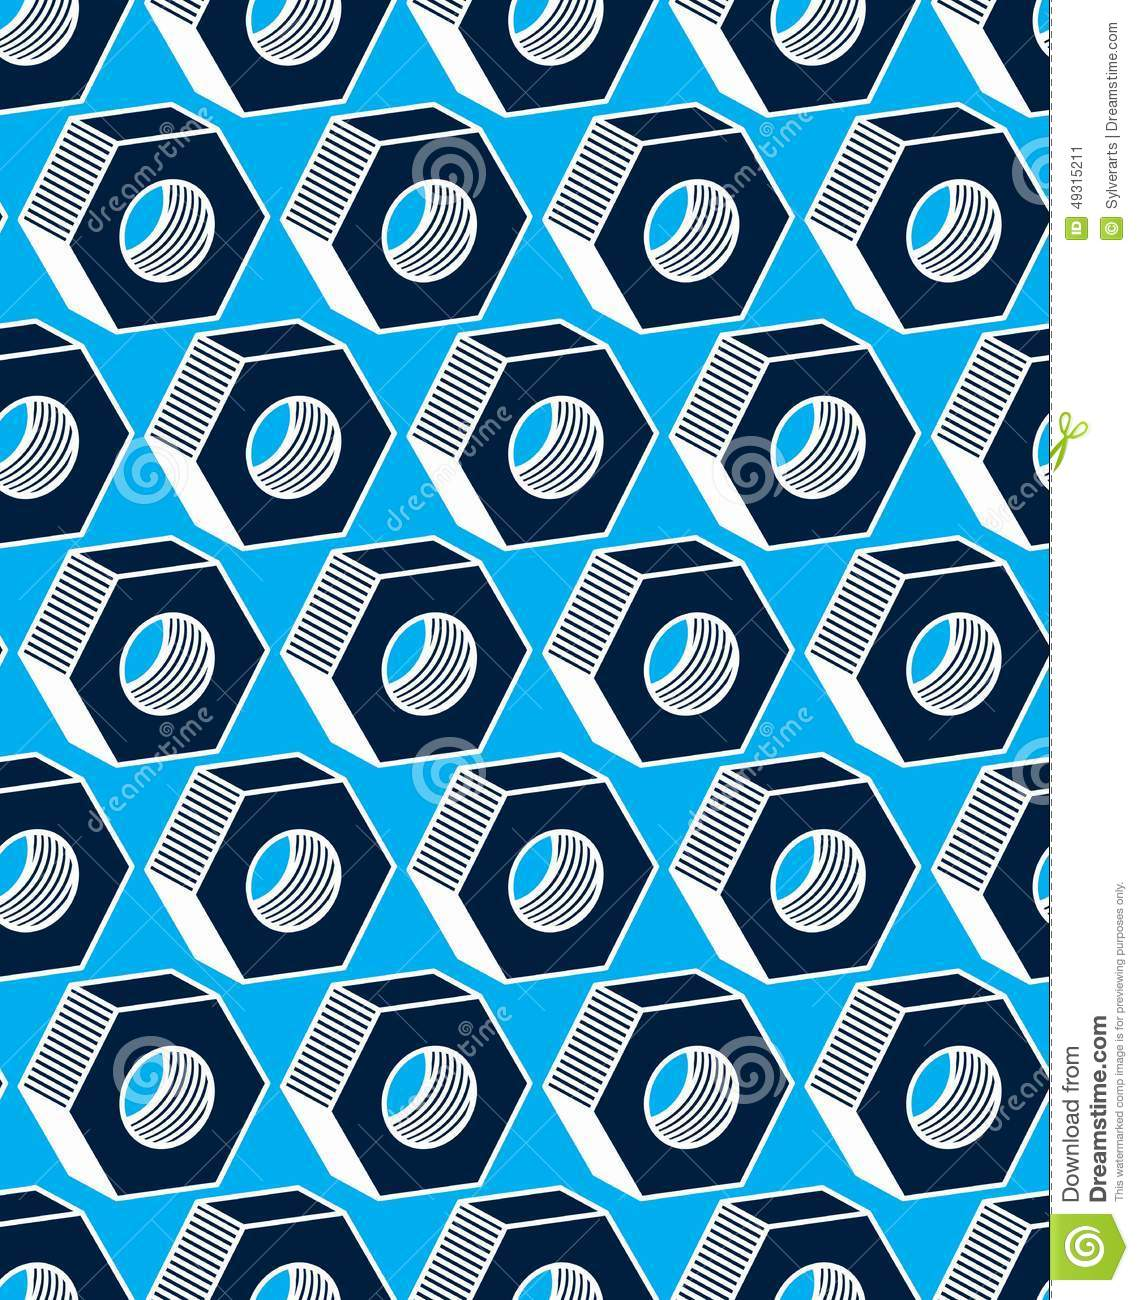 Good Wallpaper High Quality Pattern - symmetric-seamless-pattern-d-industrial-nuts-use-bolts-manufacturing-parts-wallpaper-detailed-high-quality-three-49315211  Graphic_885969.jpg